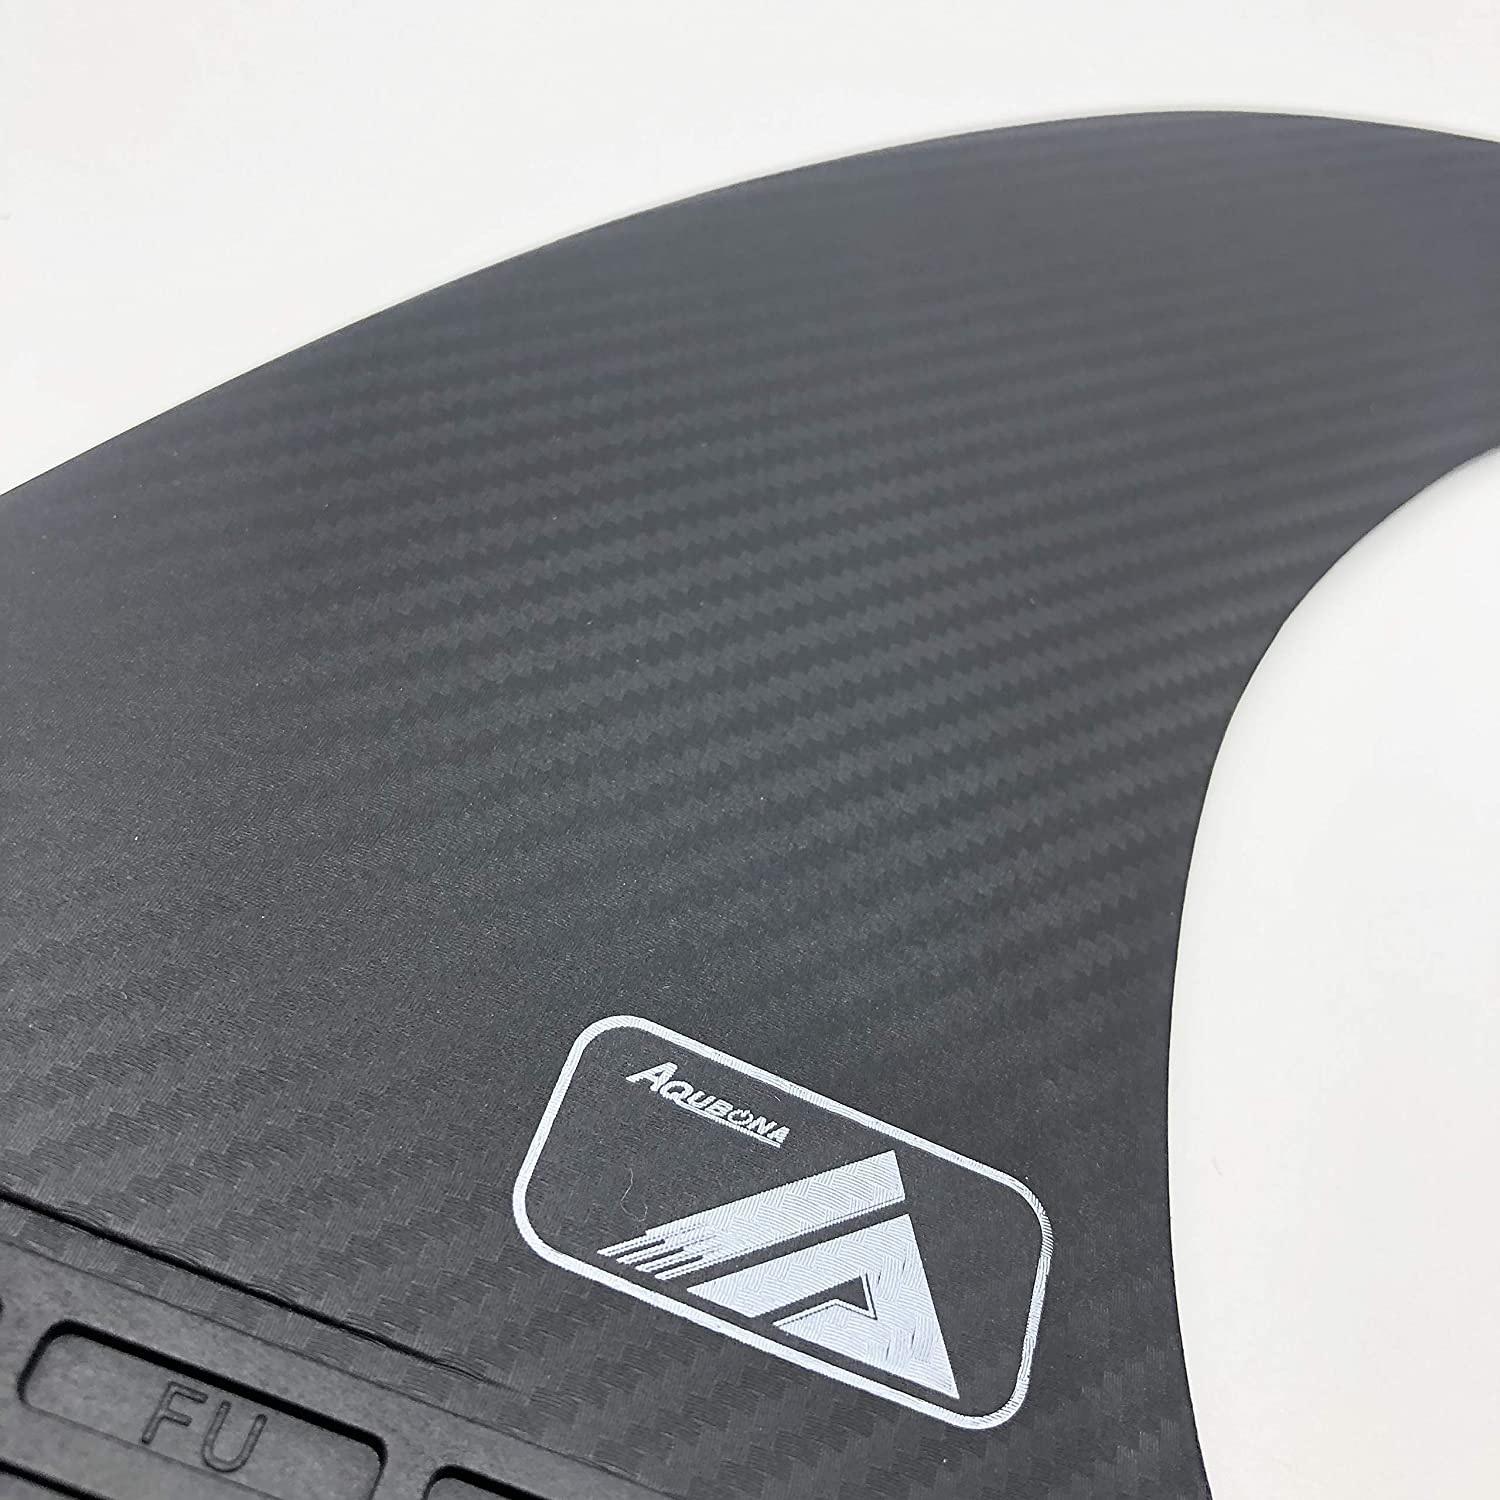 Surfboard /& Paddleboard AQUBONA Future /& FCS Surf//SUP Fin for Longboard Single Fin /& Thruster Reinforced FCS Surf Fins with Key /& Screws